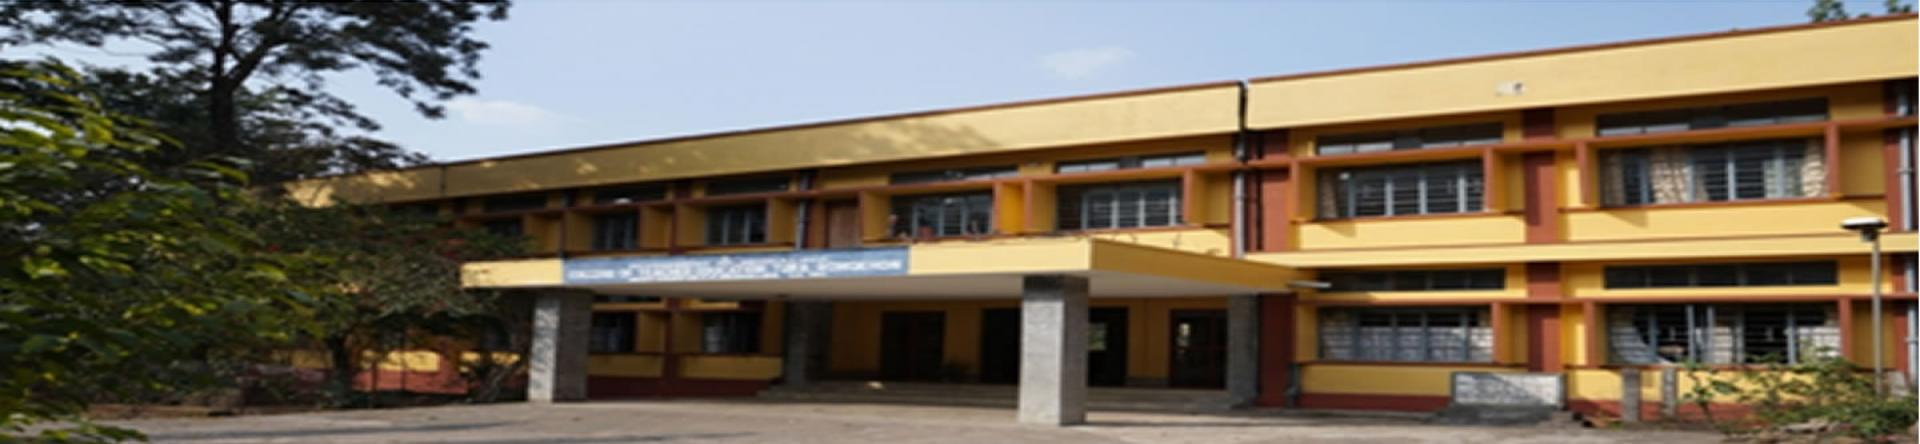 College of Teacher Education Tura, Rongkhon